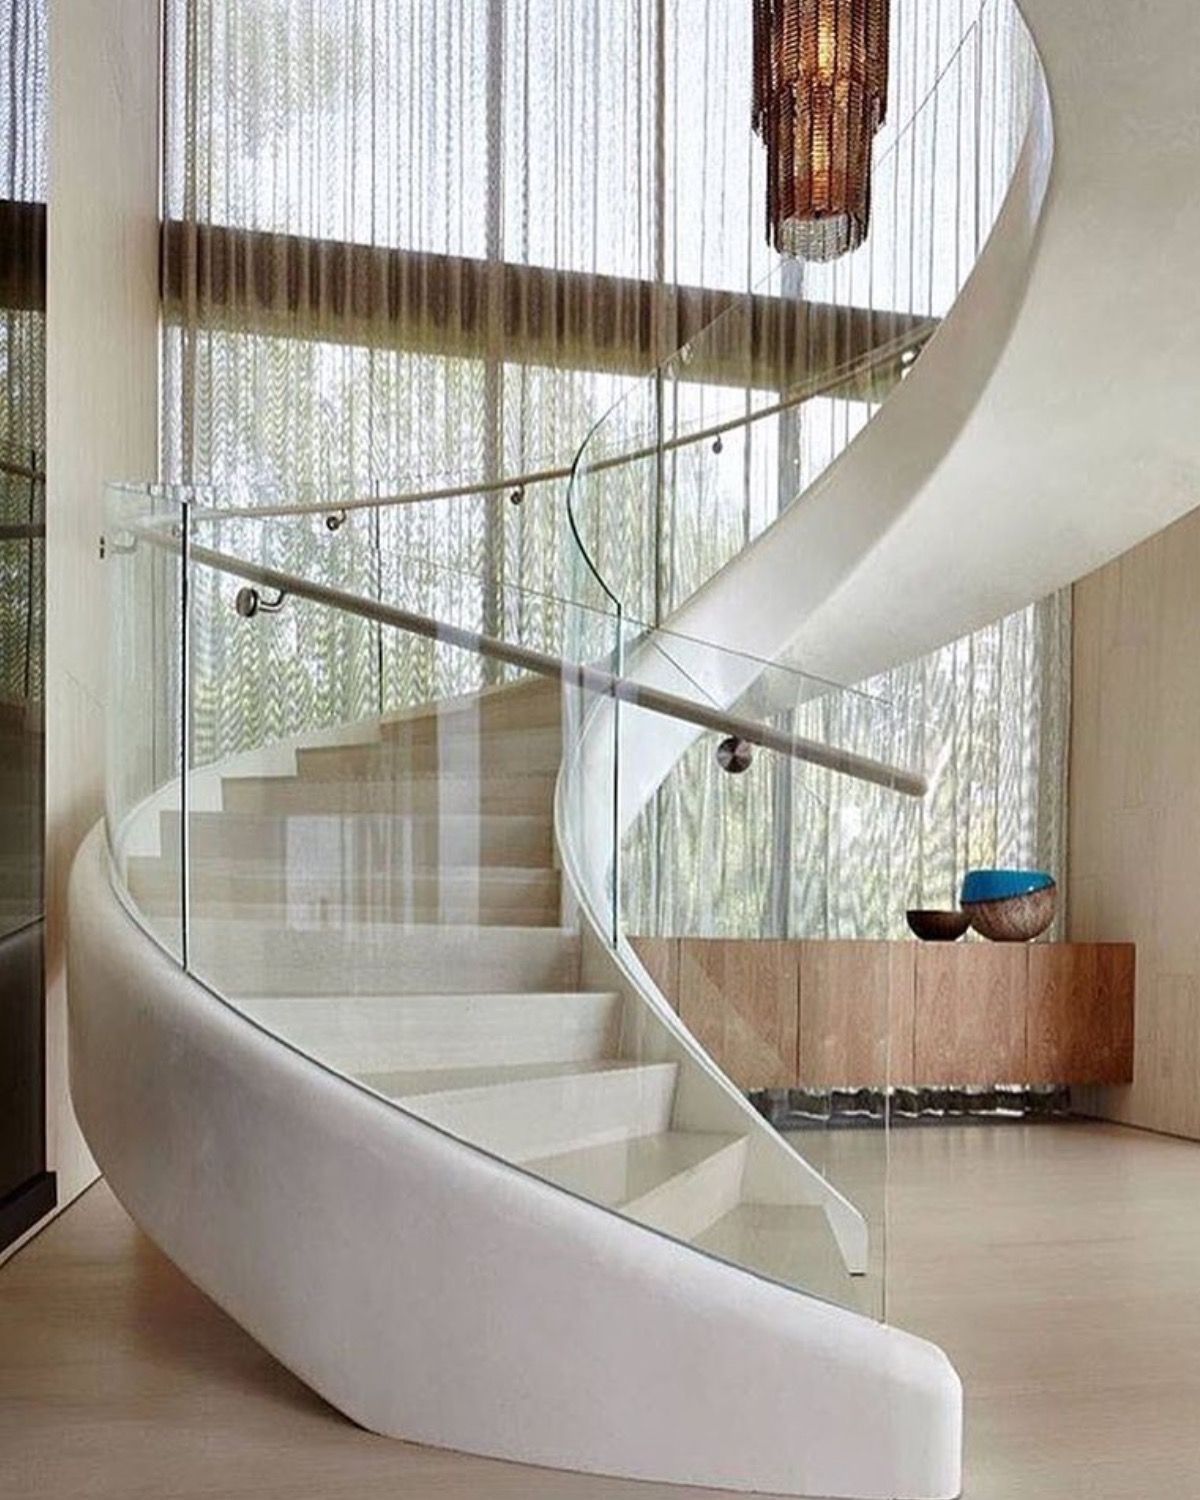 This White Sculptural Spiral Staircase Entices You Upstairs In This Home.